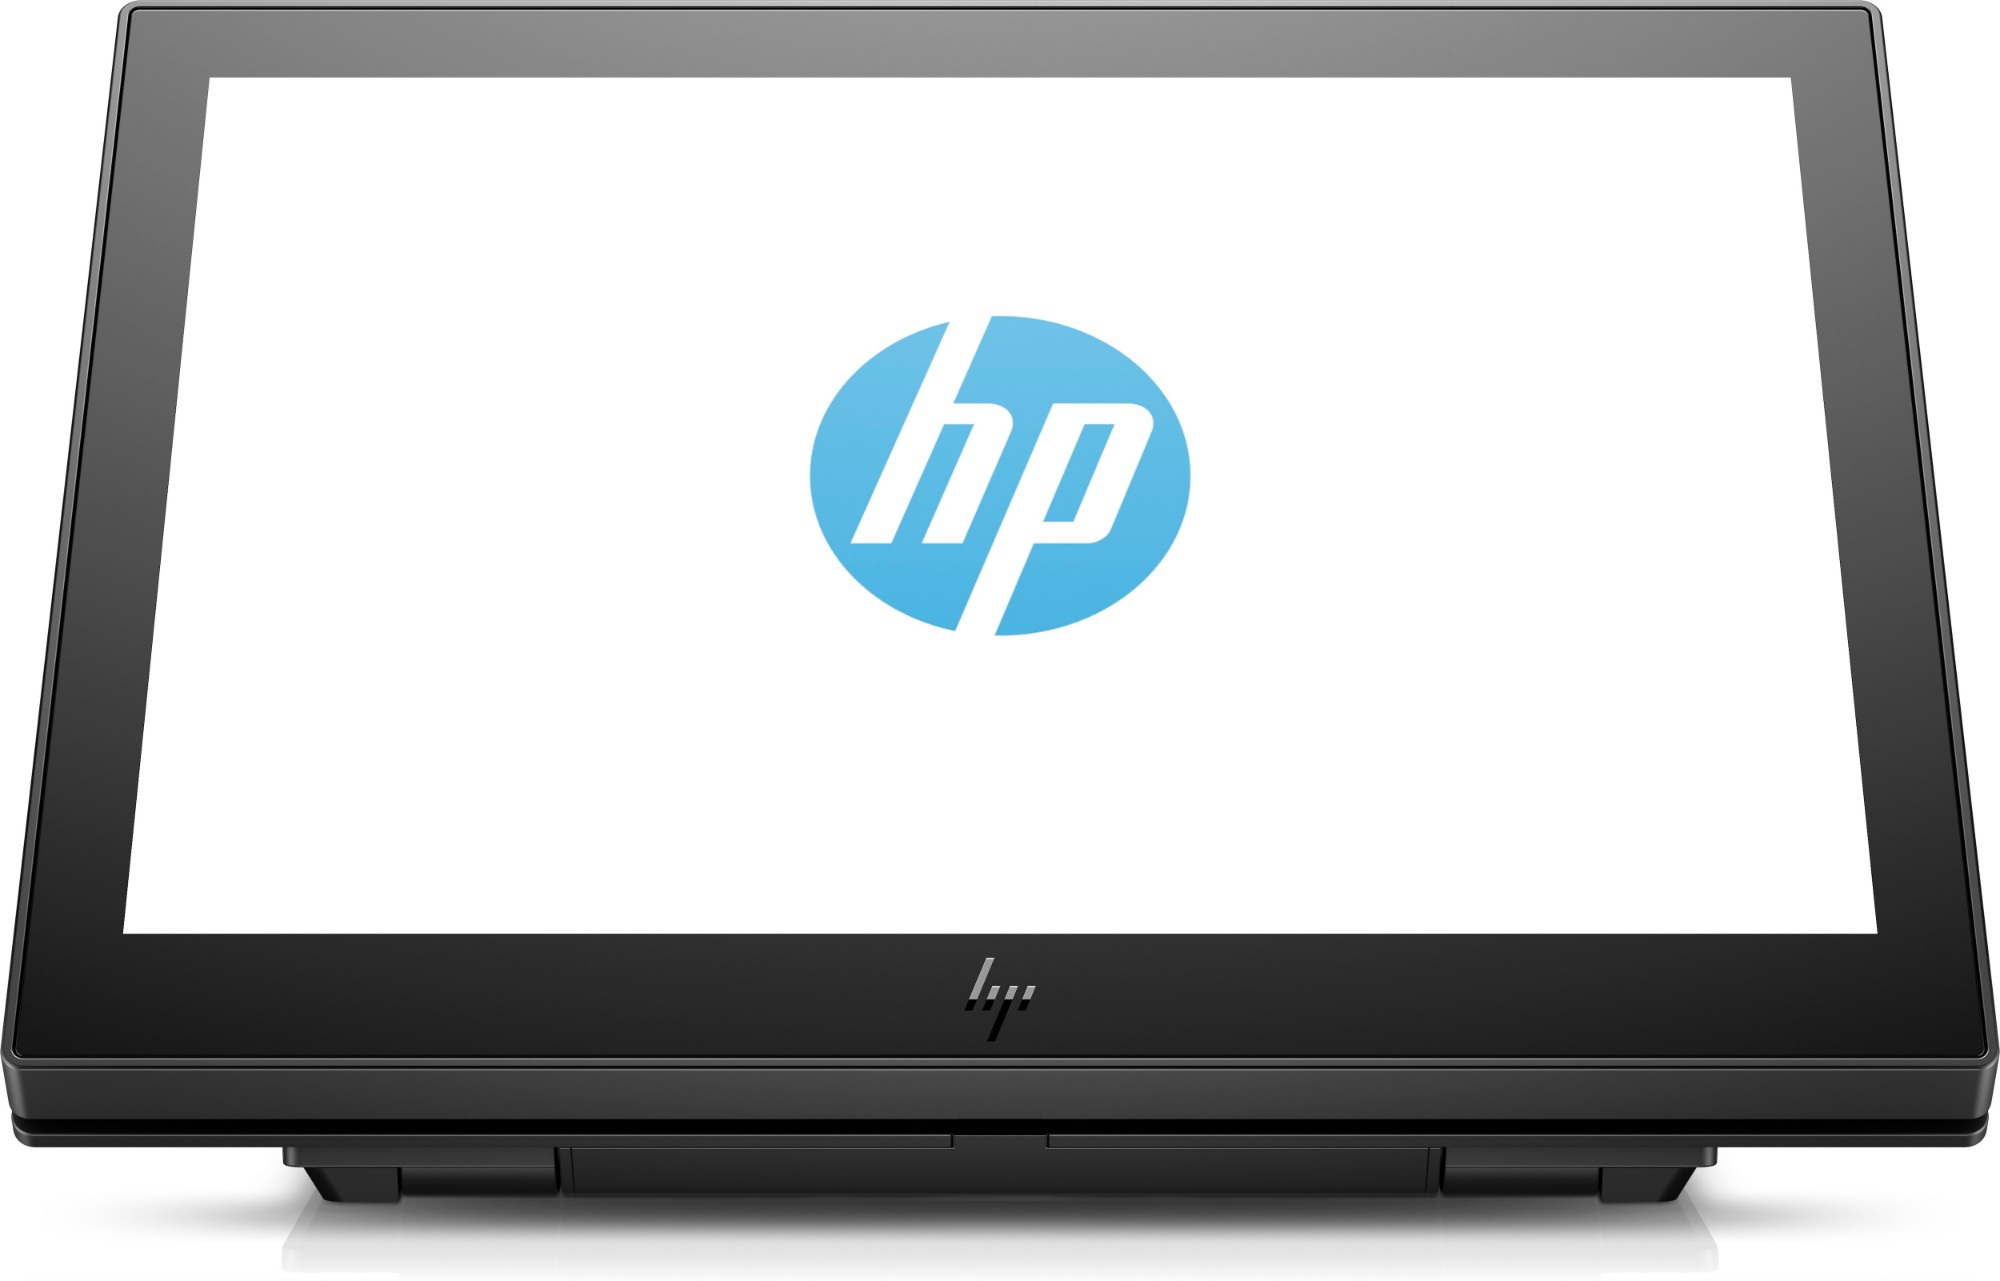 HP ElitePOS 10.1in Touch Display (1XD81AA)